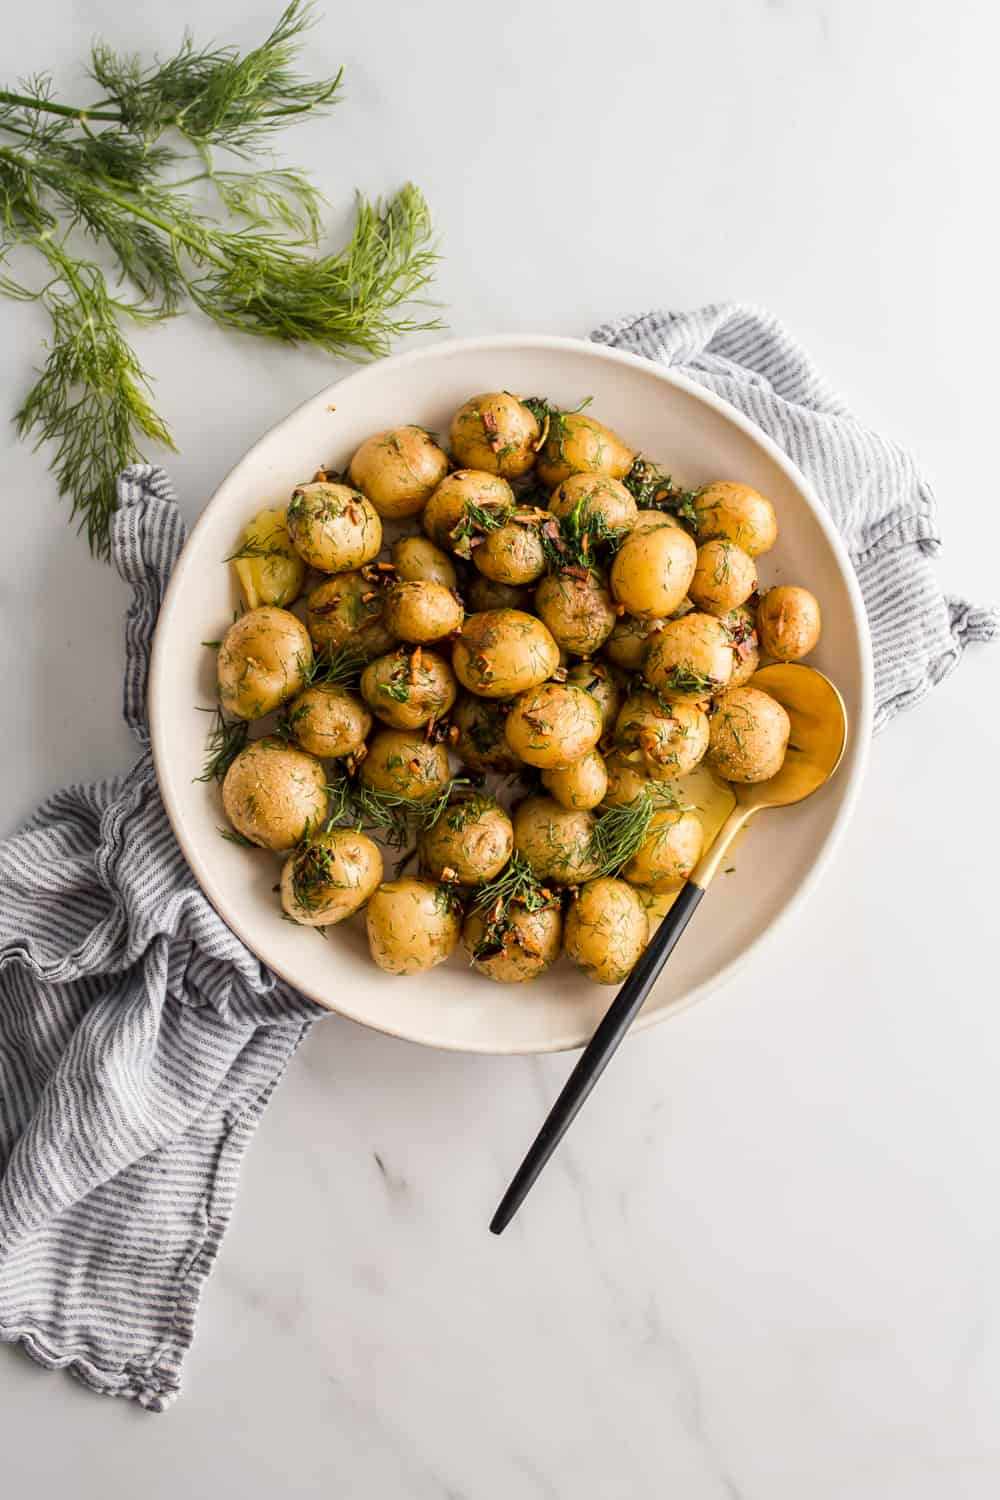 Boiled Baby Potatoes With Garlic Butter And Dill Lenaskitchen